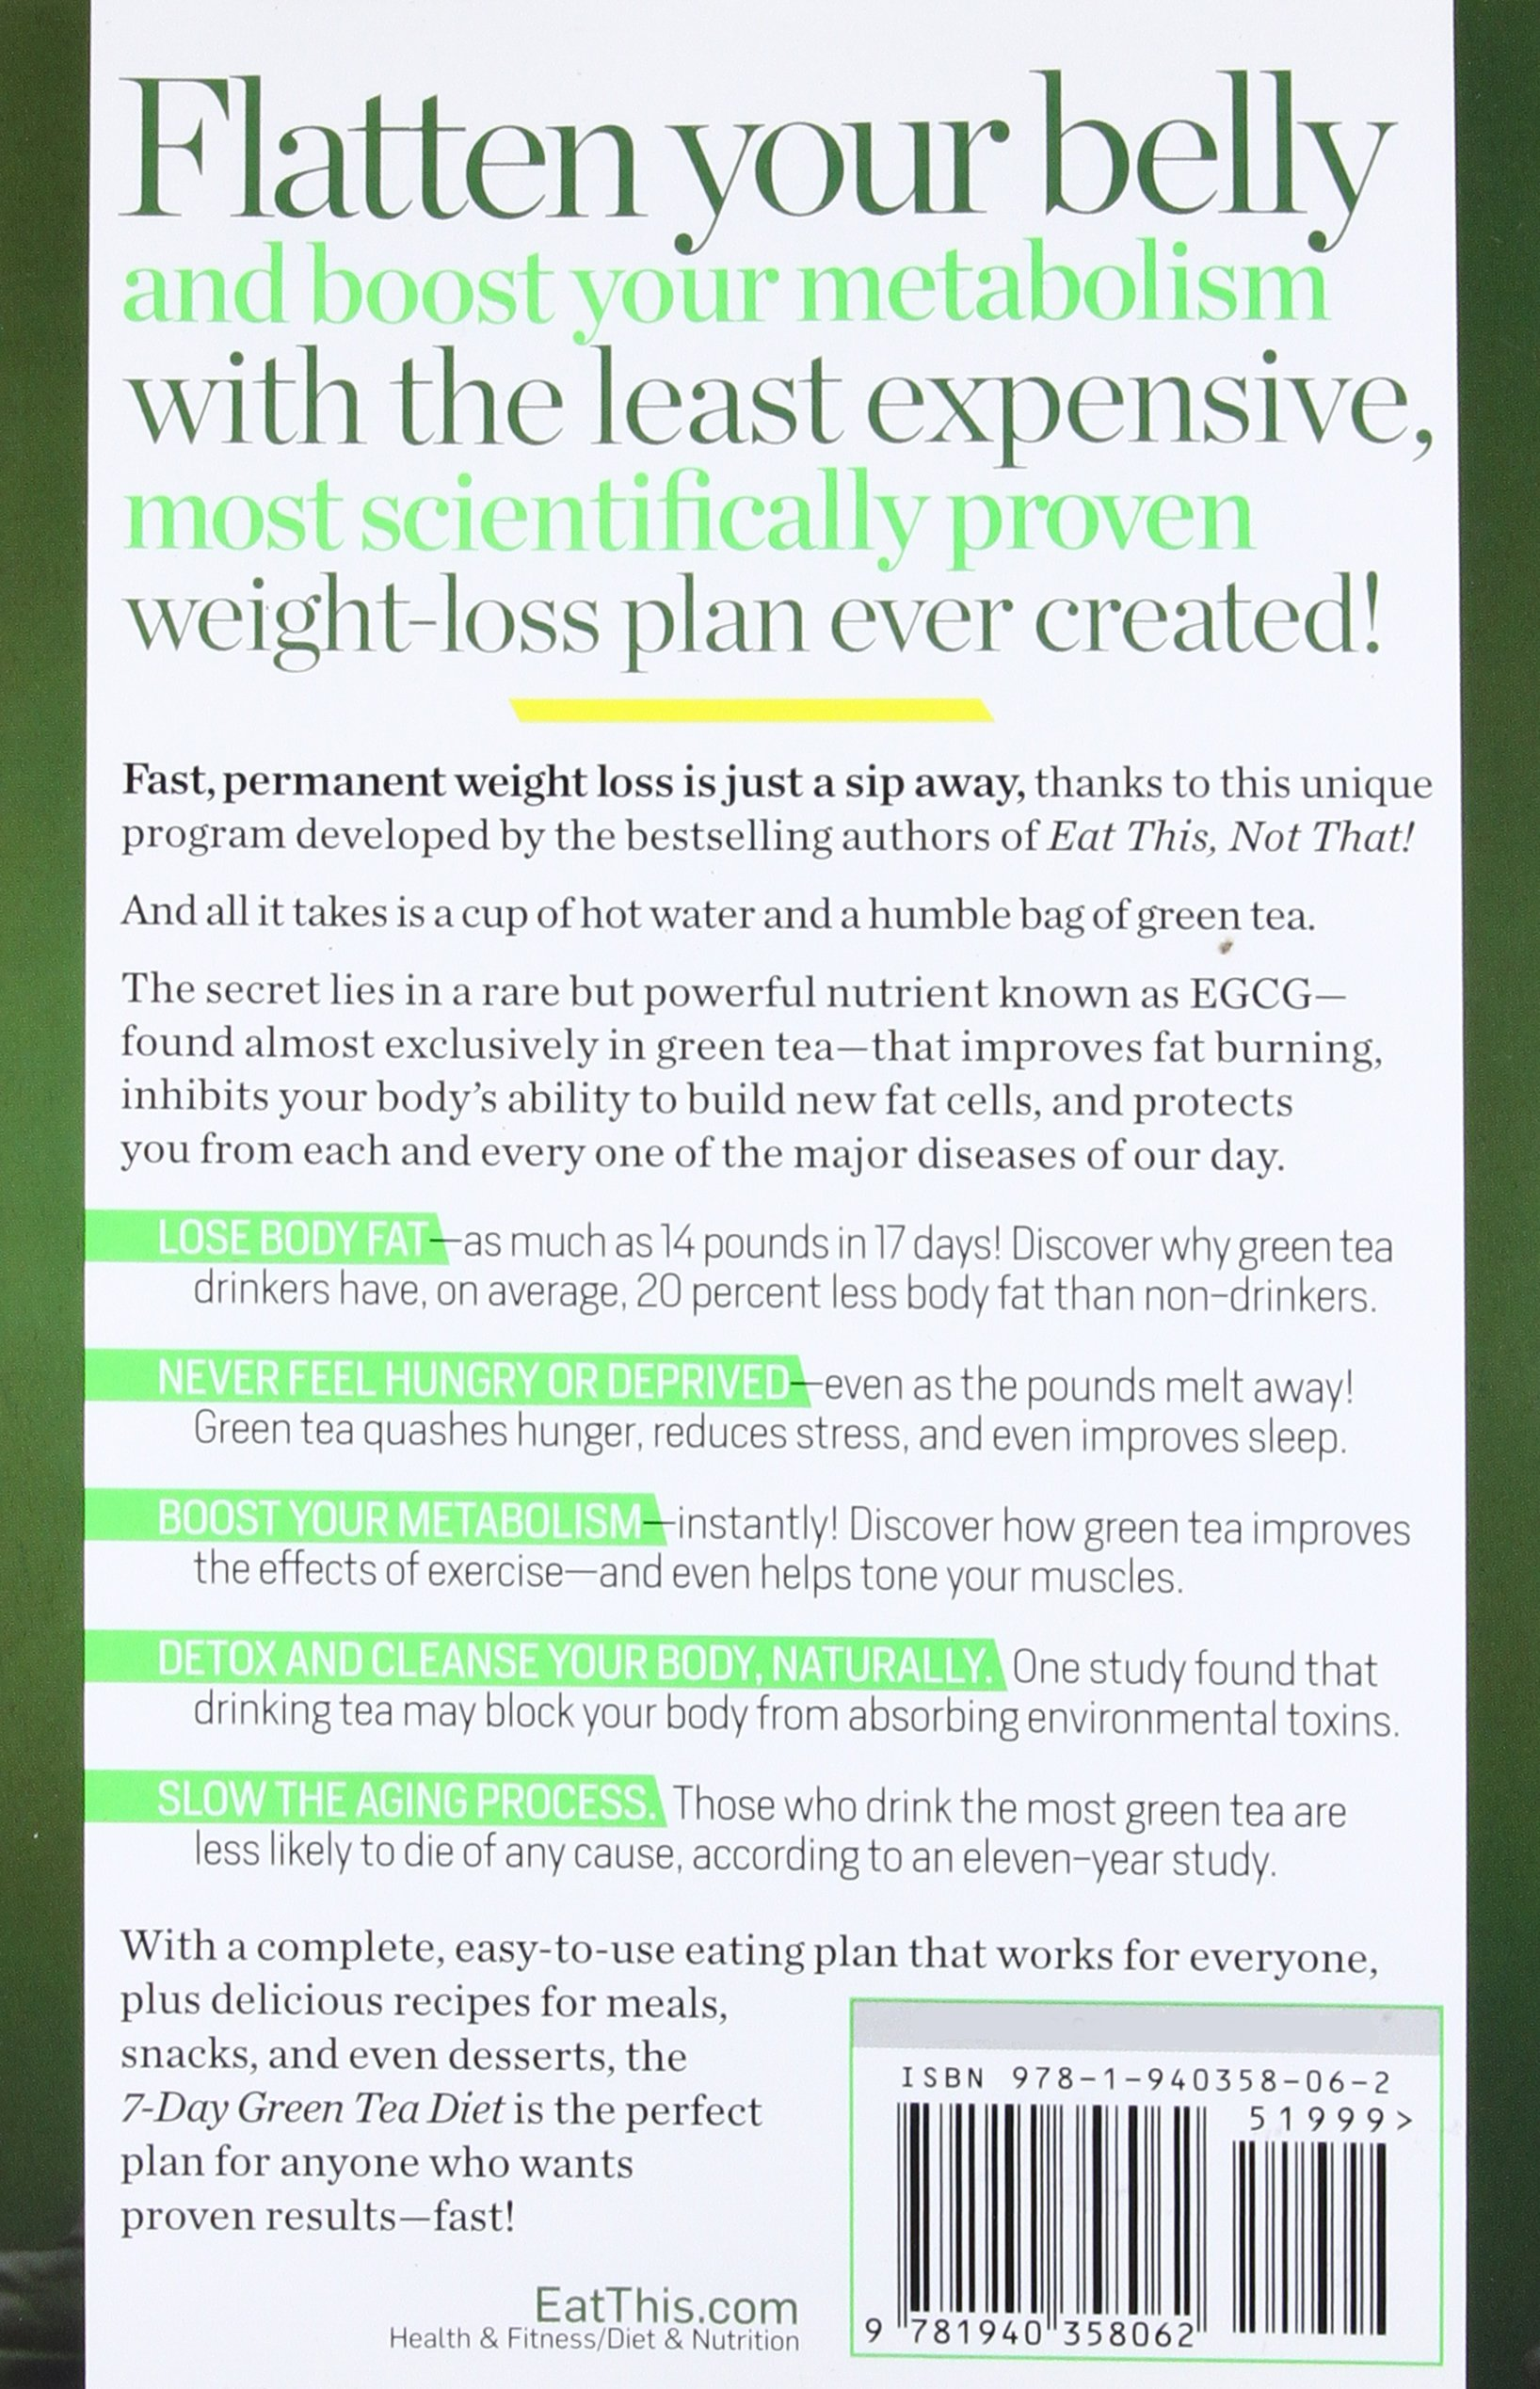 Simple tips to reduce lower belly fat